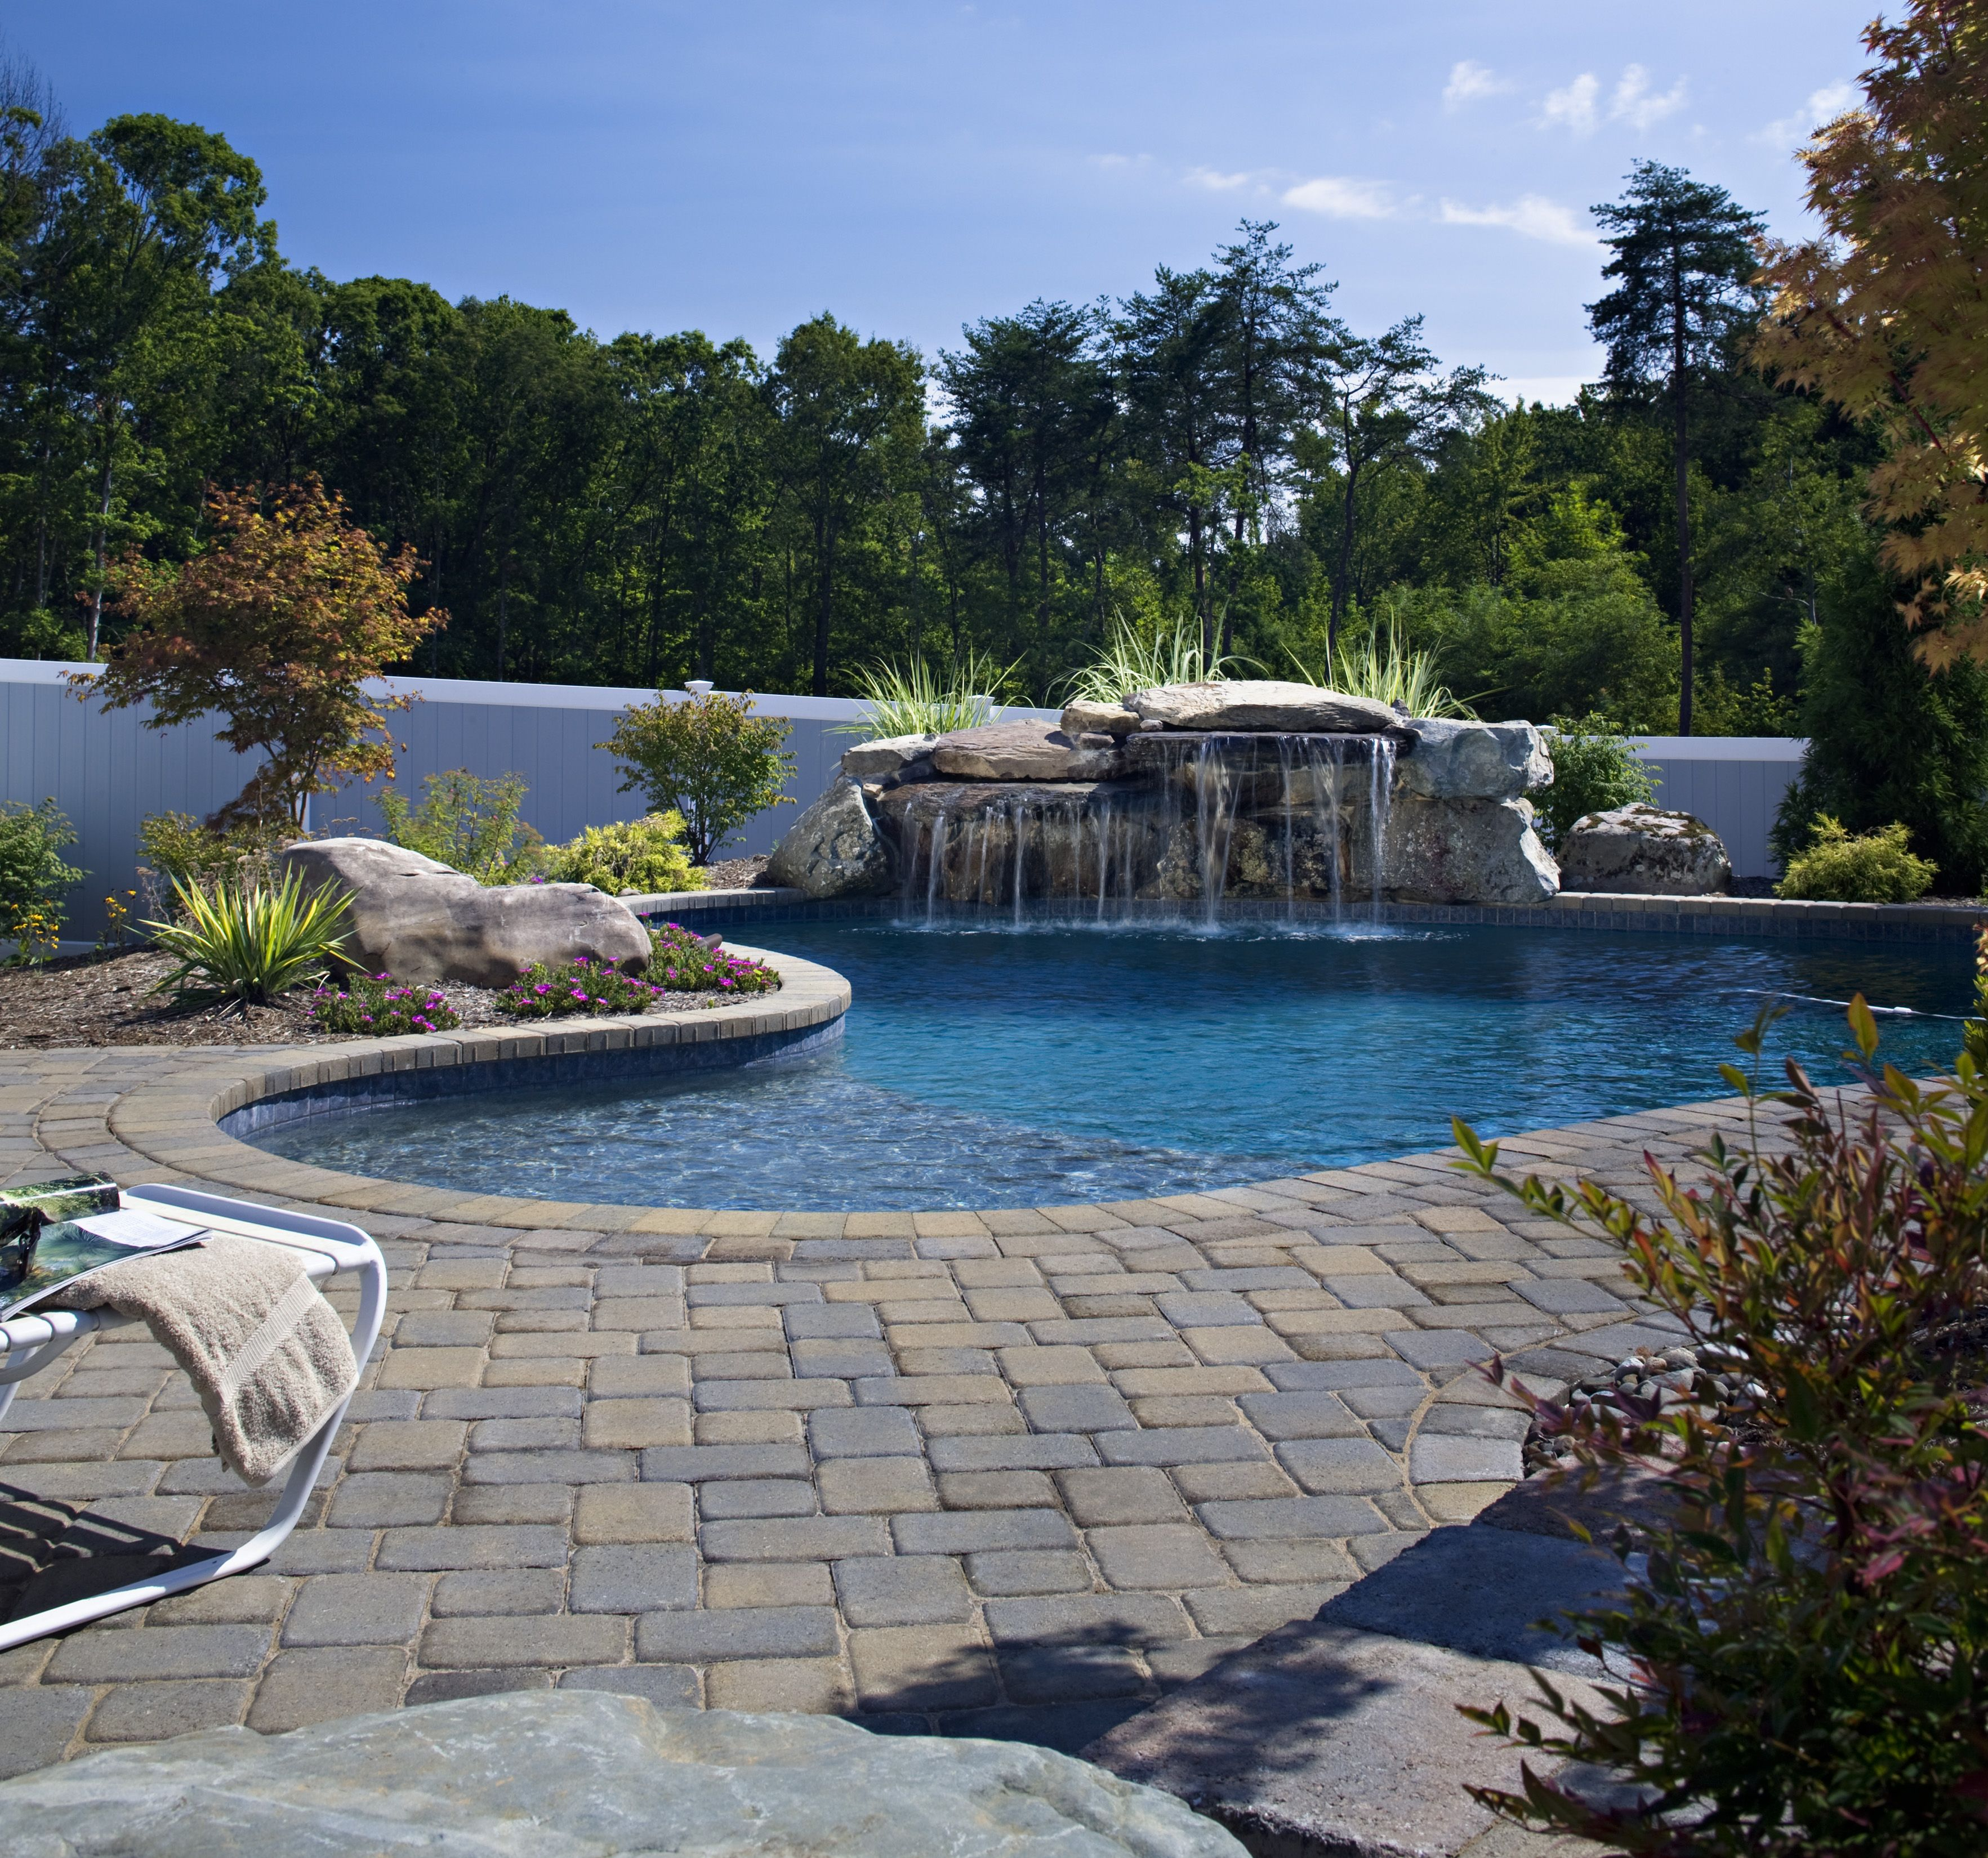 Natural Stone Pool Deck Paver Pool Deck Patterned Edging Natural Stone Waterfall And